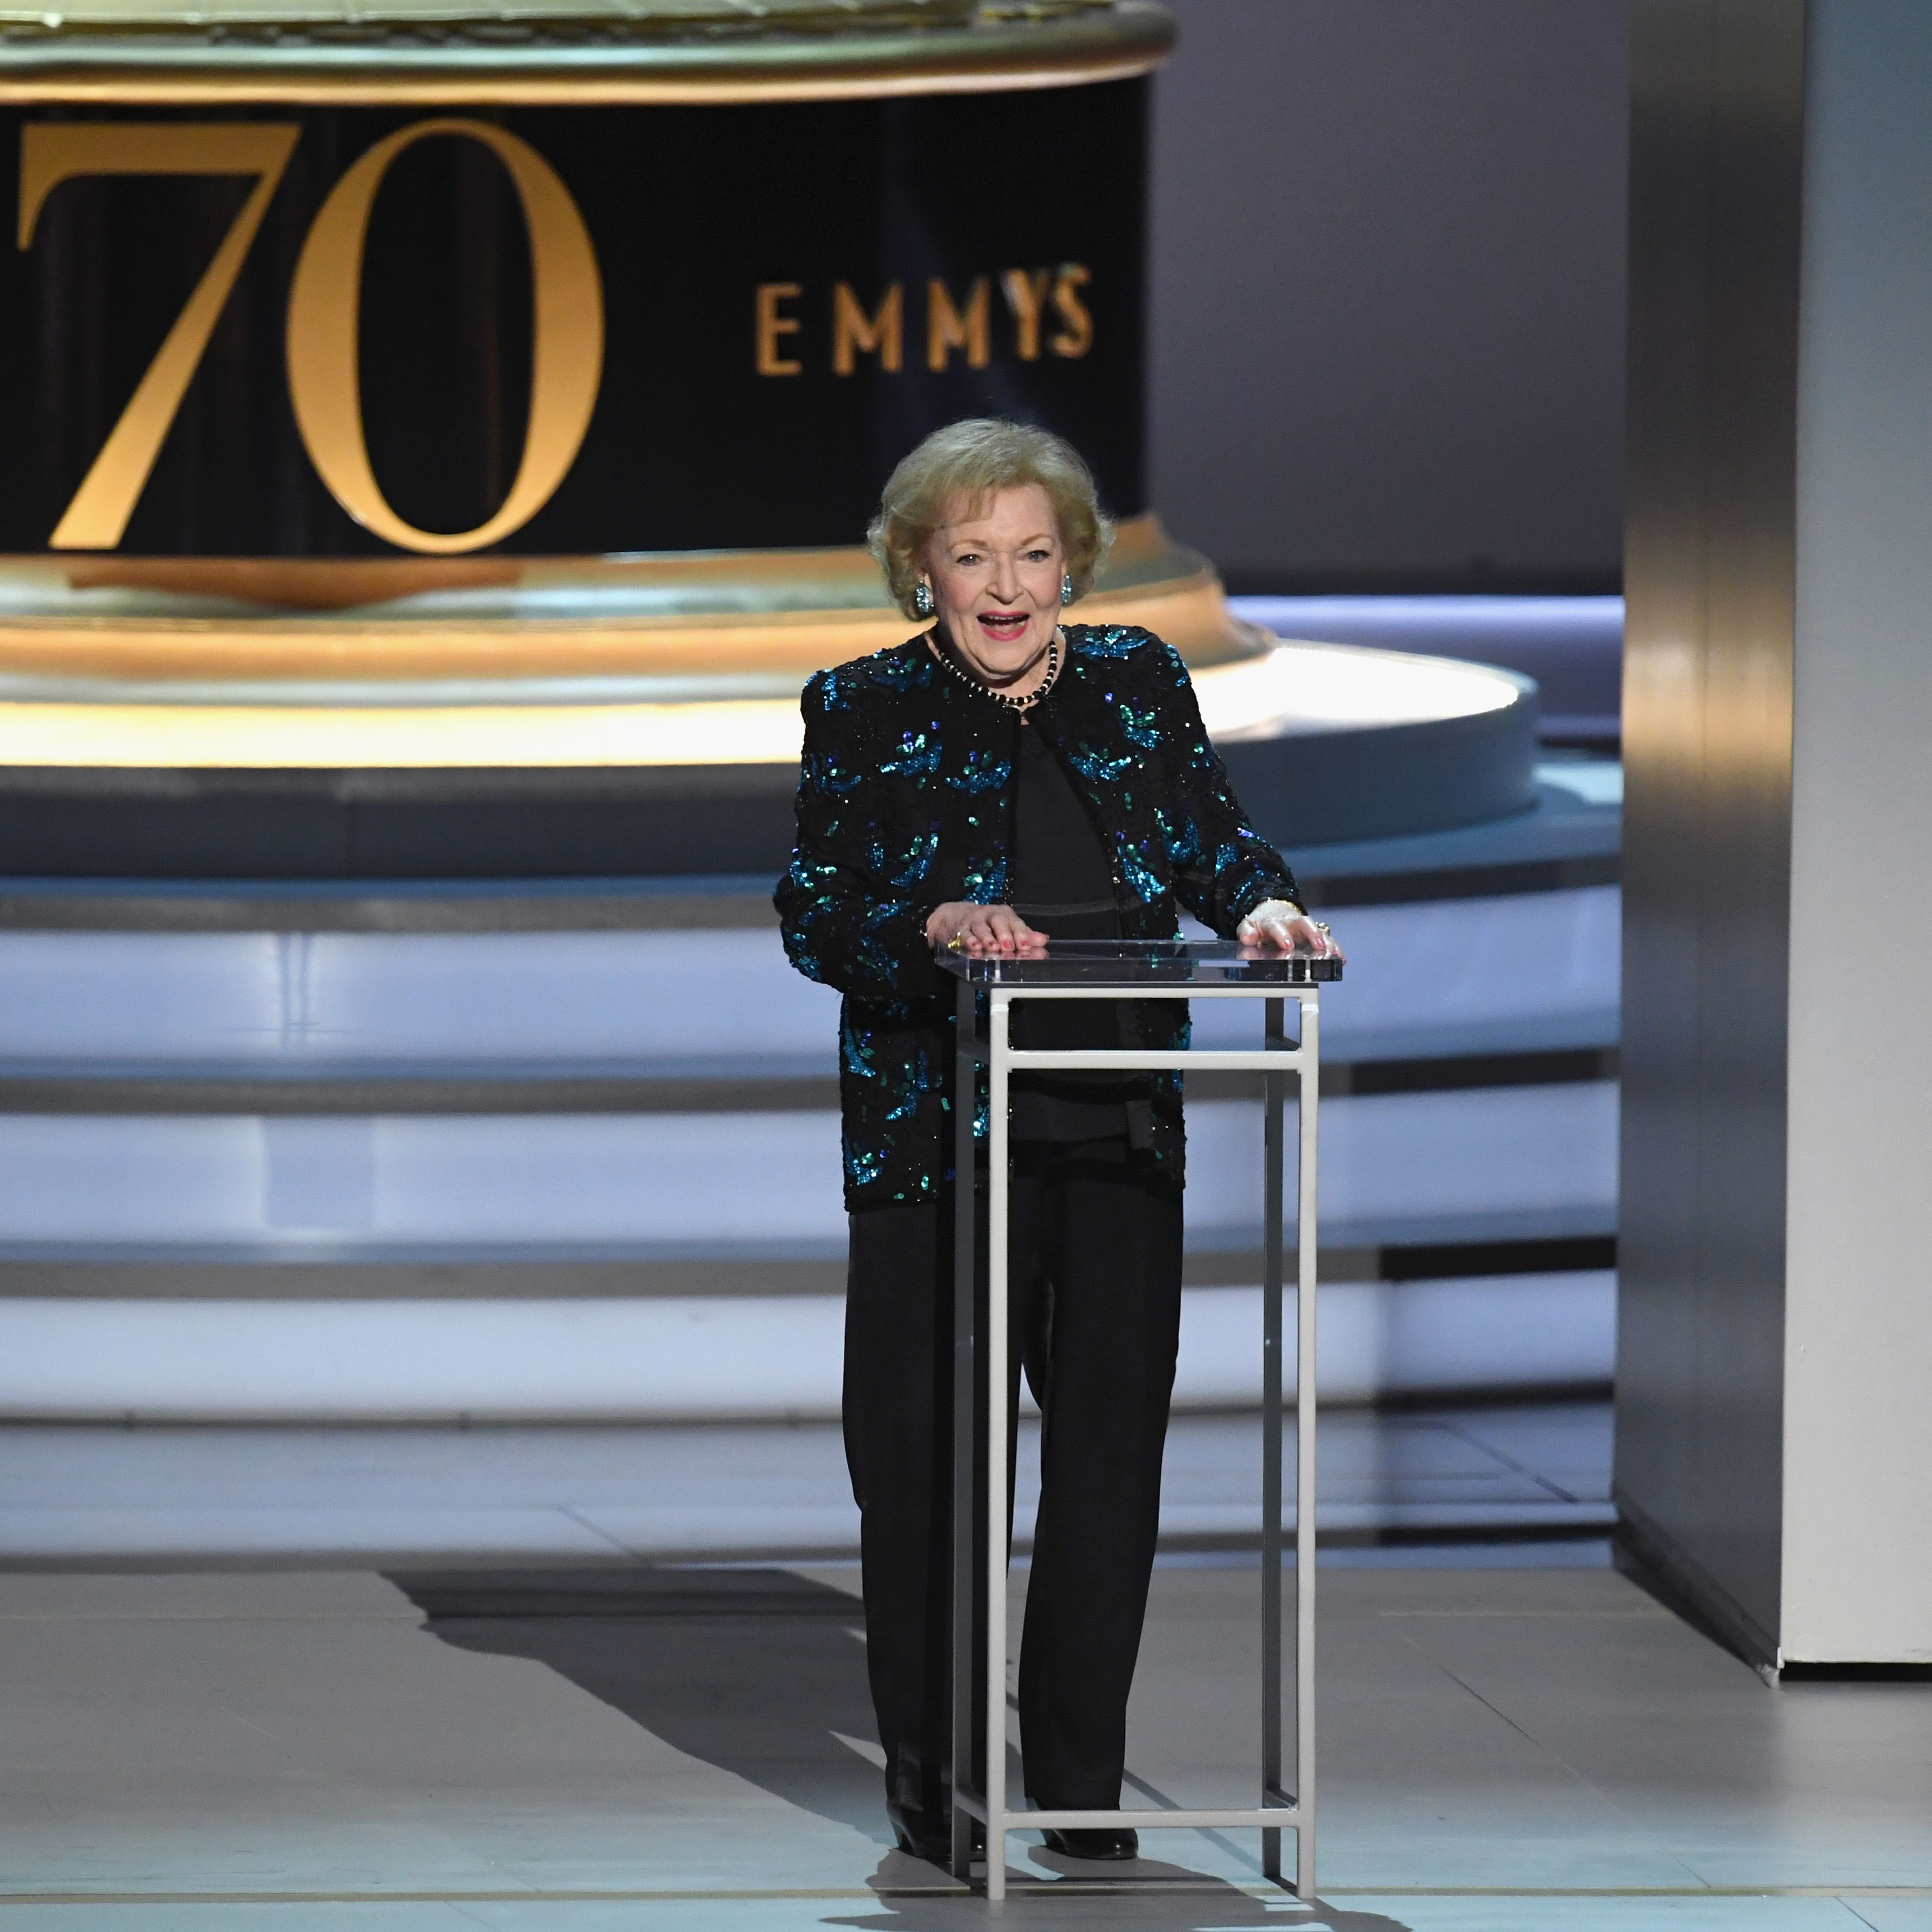 prevention.com - Leah Groth - Betty White, Emmys Show-Stealer, Reveals Secret to Longevity at 96